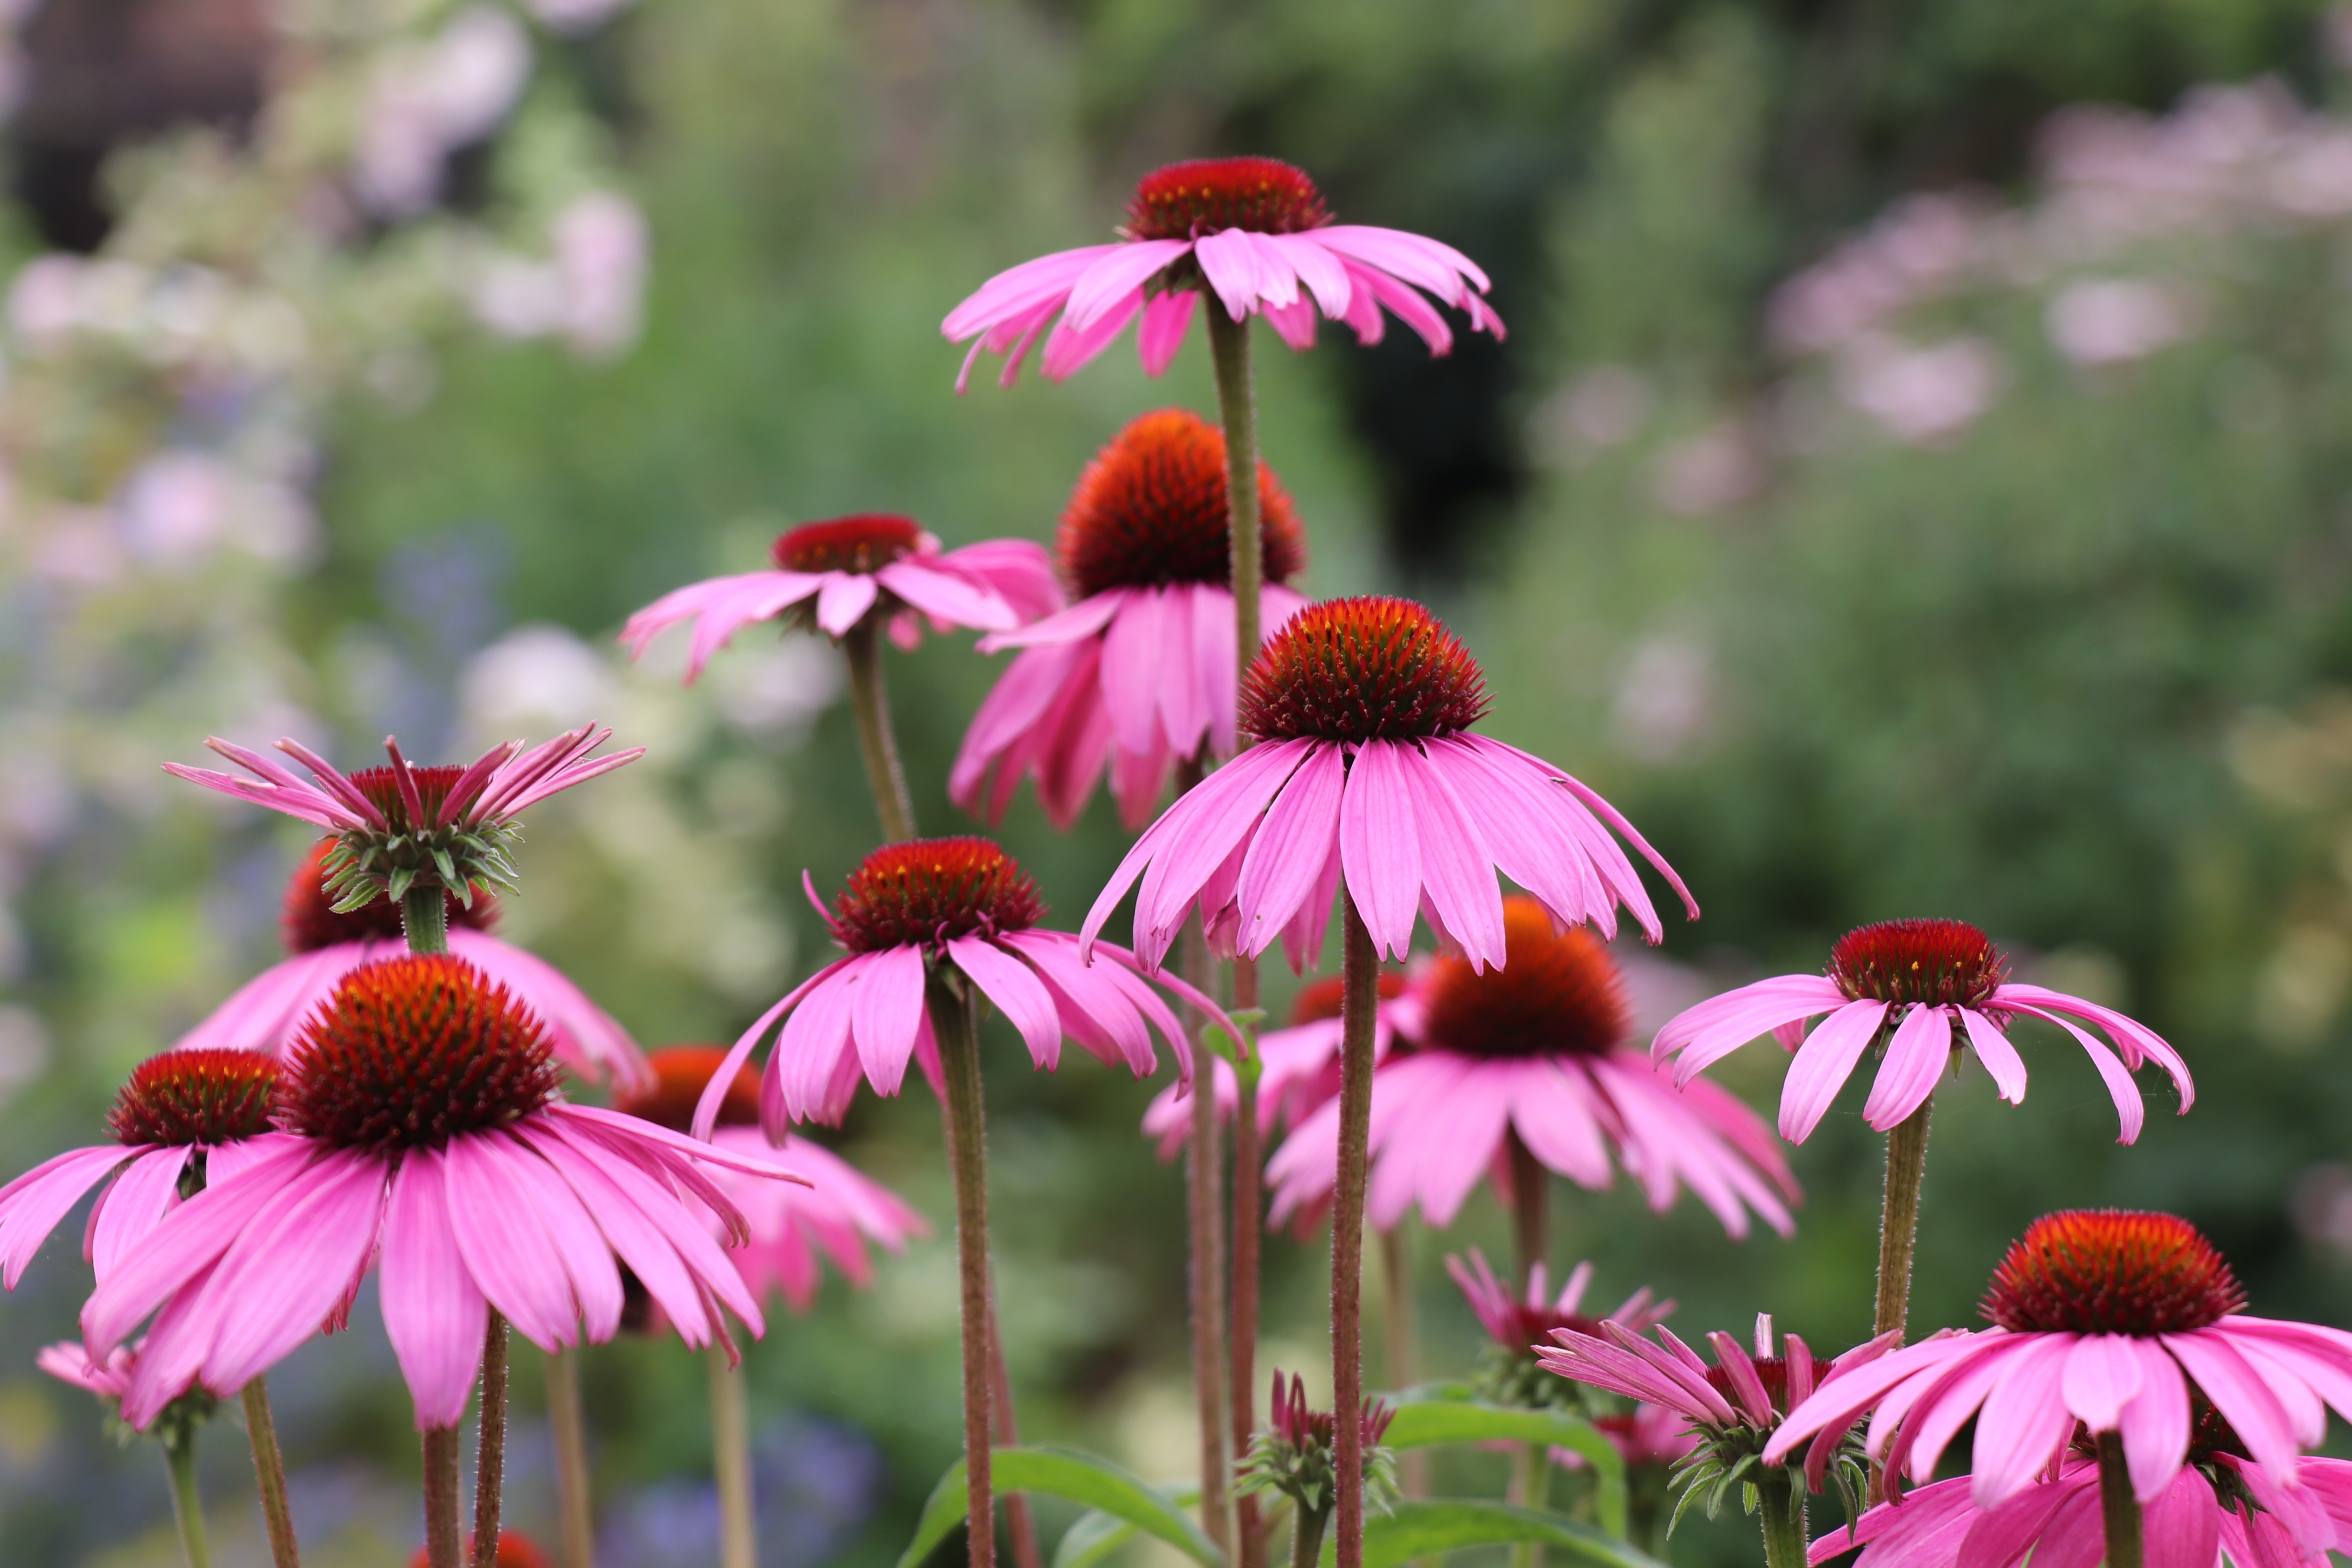 Pink echinacea heads in full bloom in the Great Broadwalk Borders